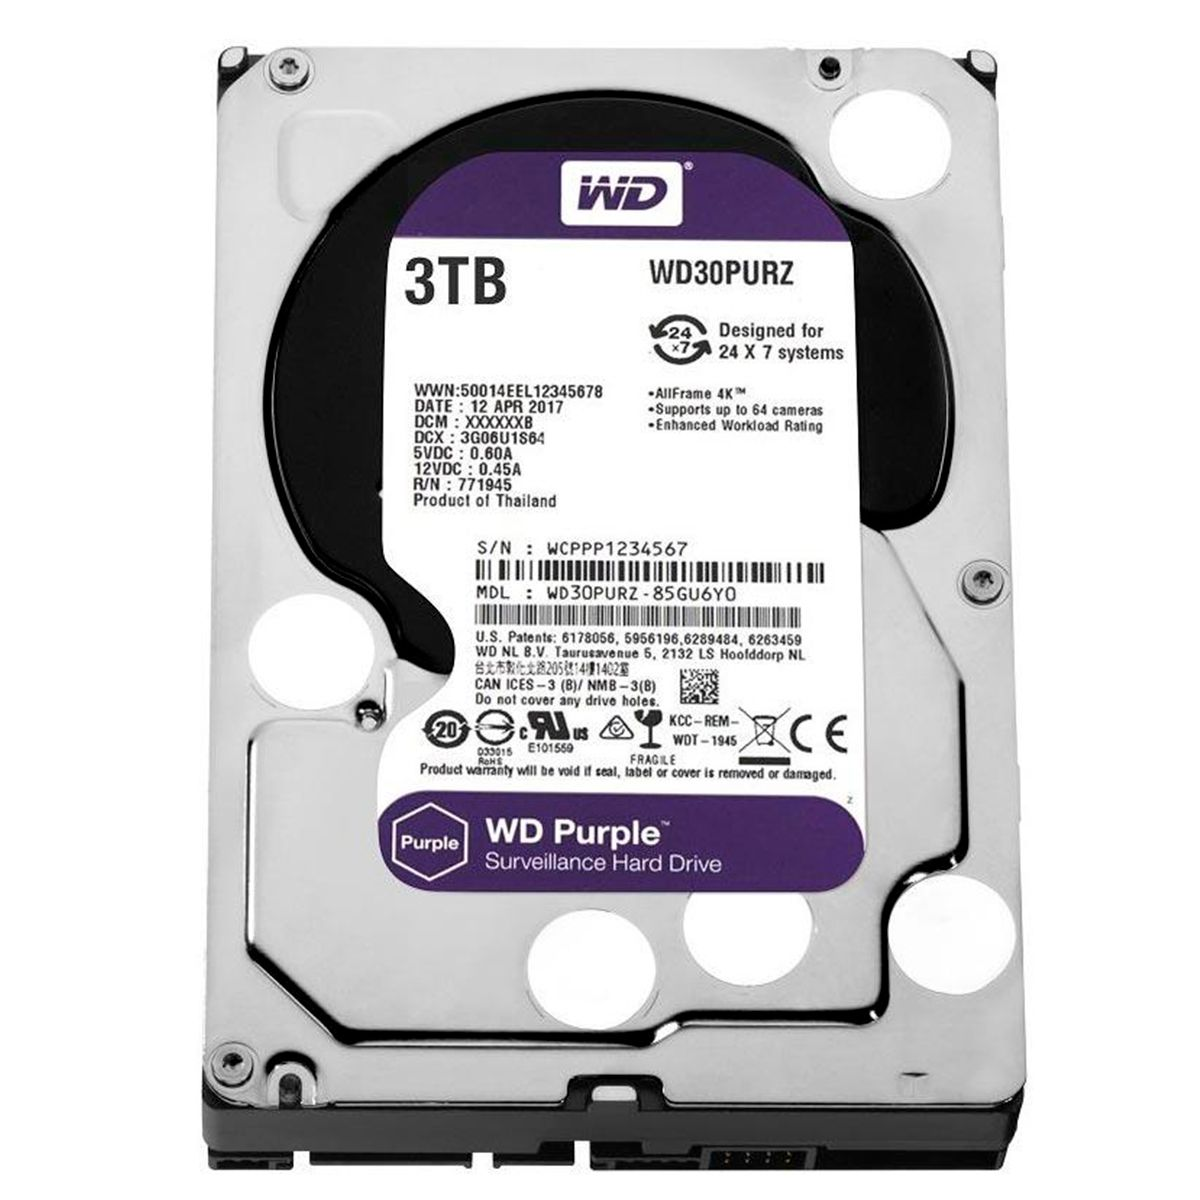 HD Interno WD Purple 3TB Surveillance SATA III 6GB/s 5400 RPM WD30PURZ  - Tudo Forte